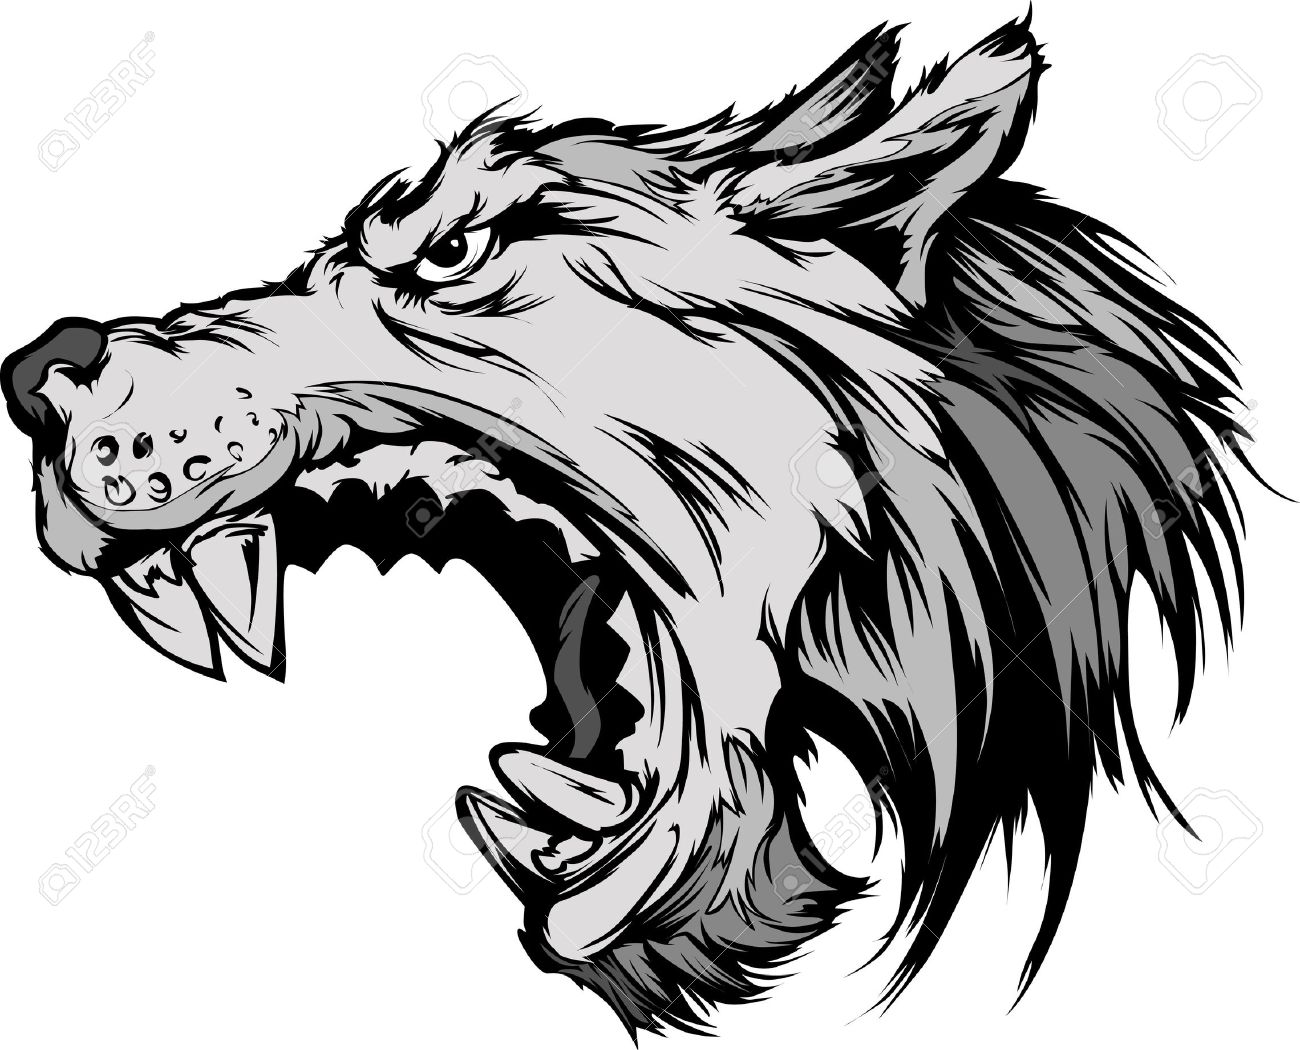 Cartoon Vector Mascot Image of a Growling Grey Wolf Head Stock Vector - 11375464